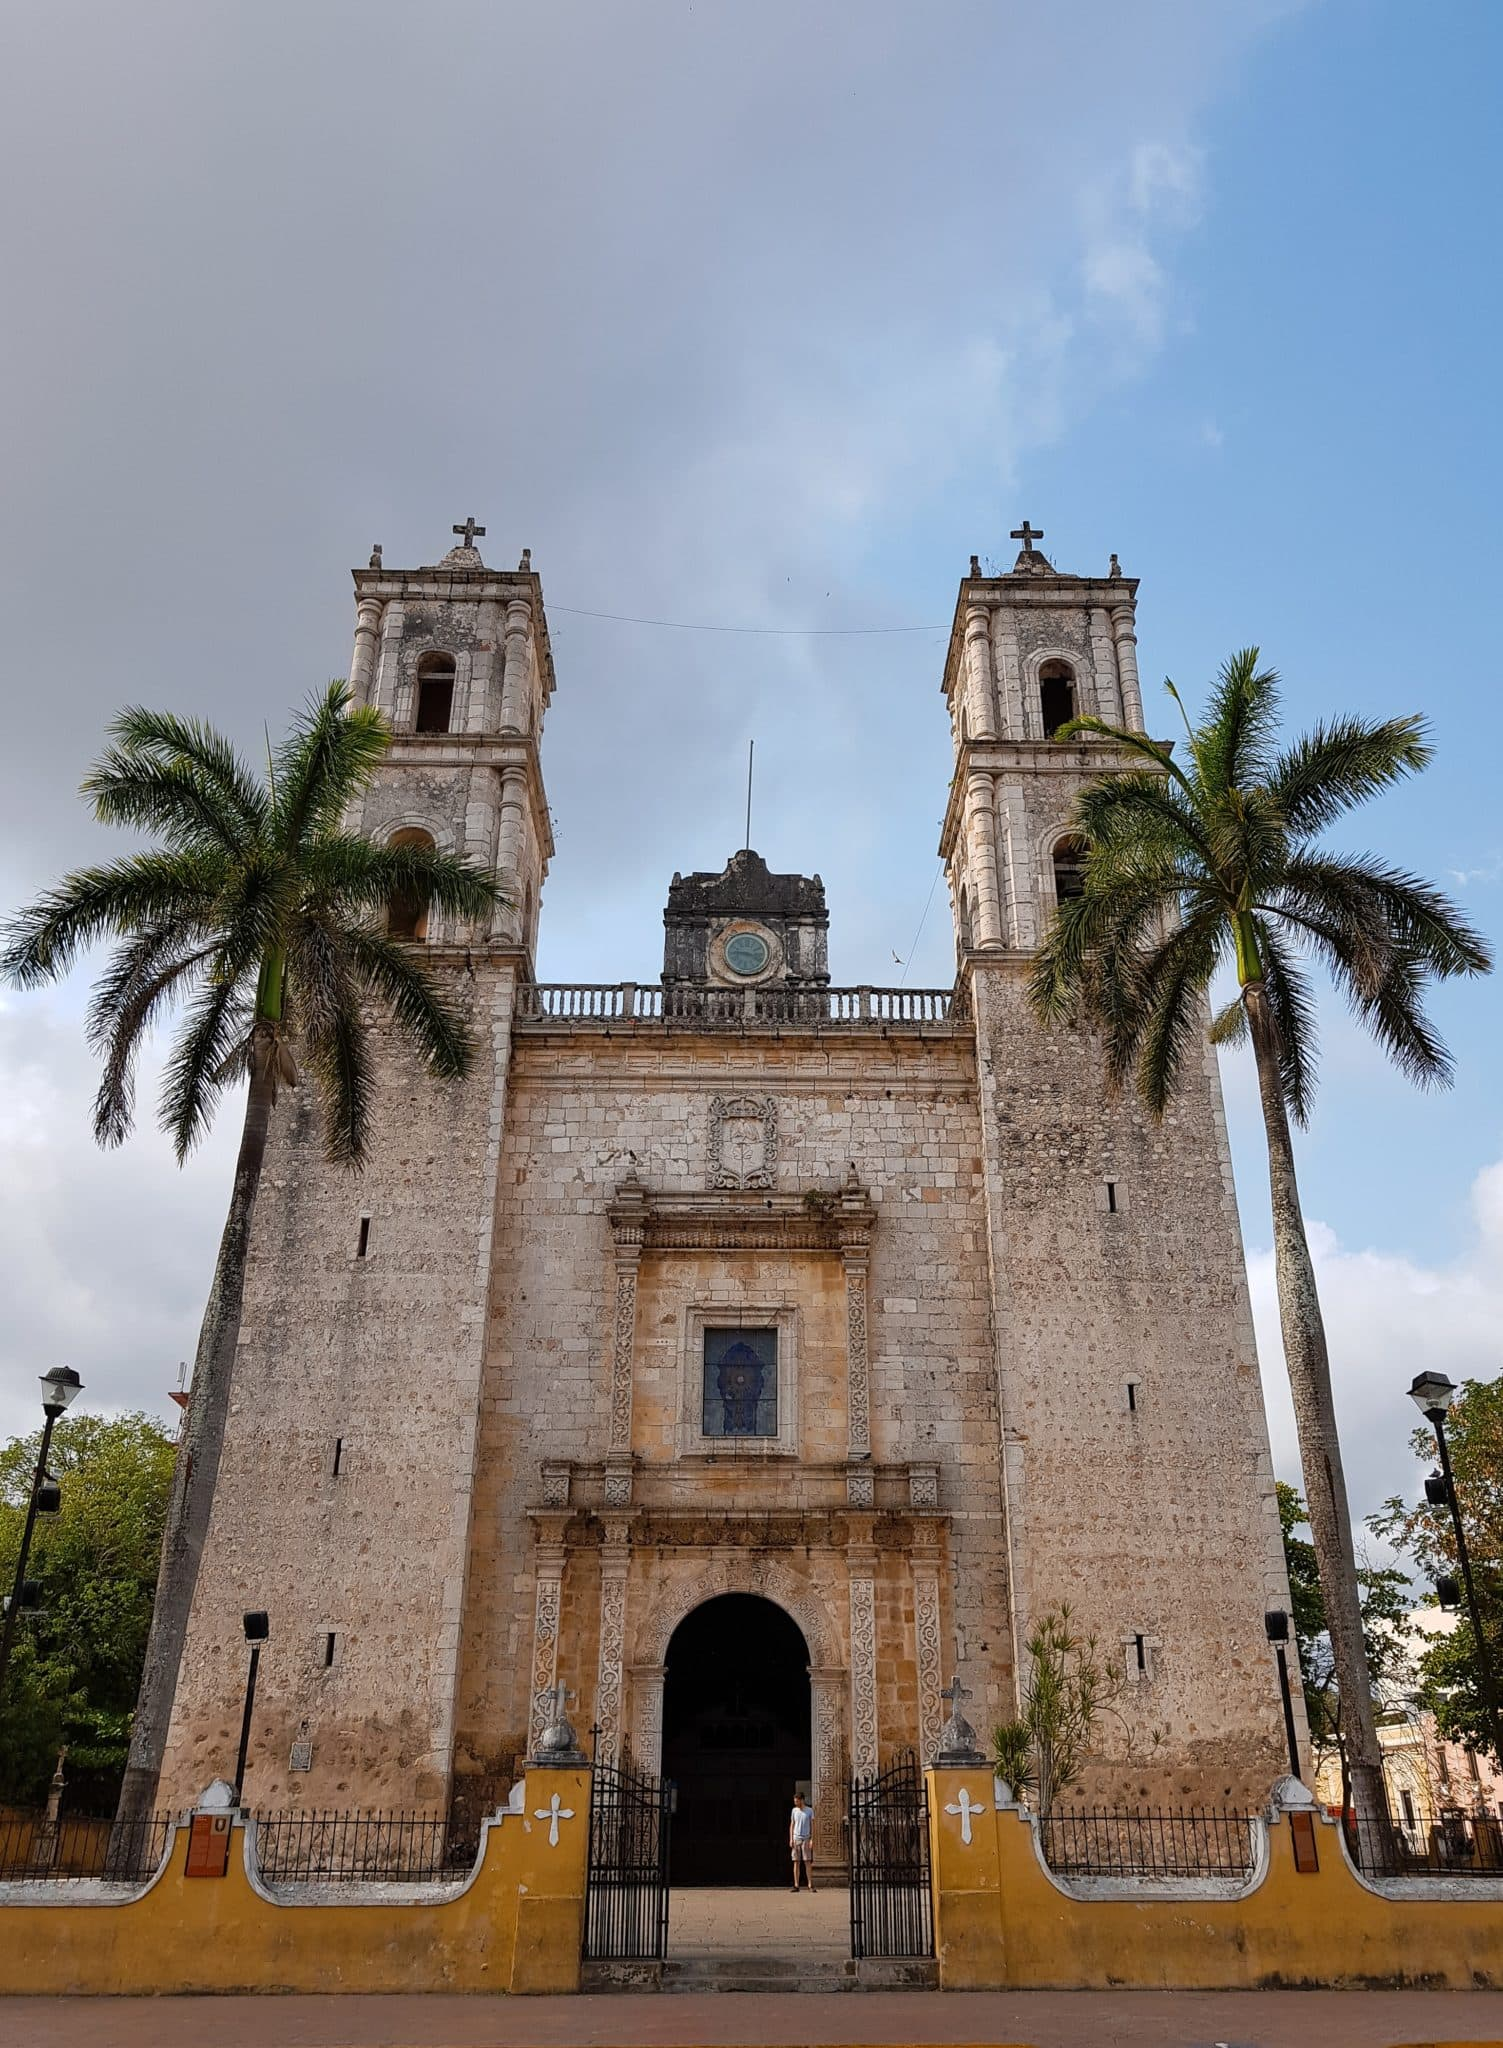 Visiting Merida Mexico | What to do in Merida